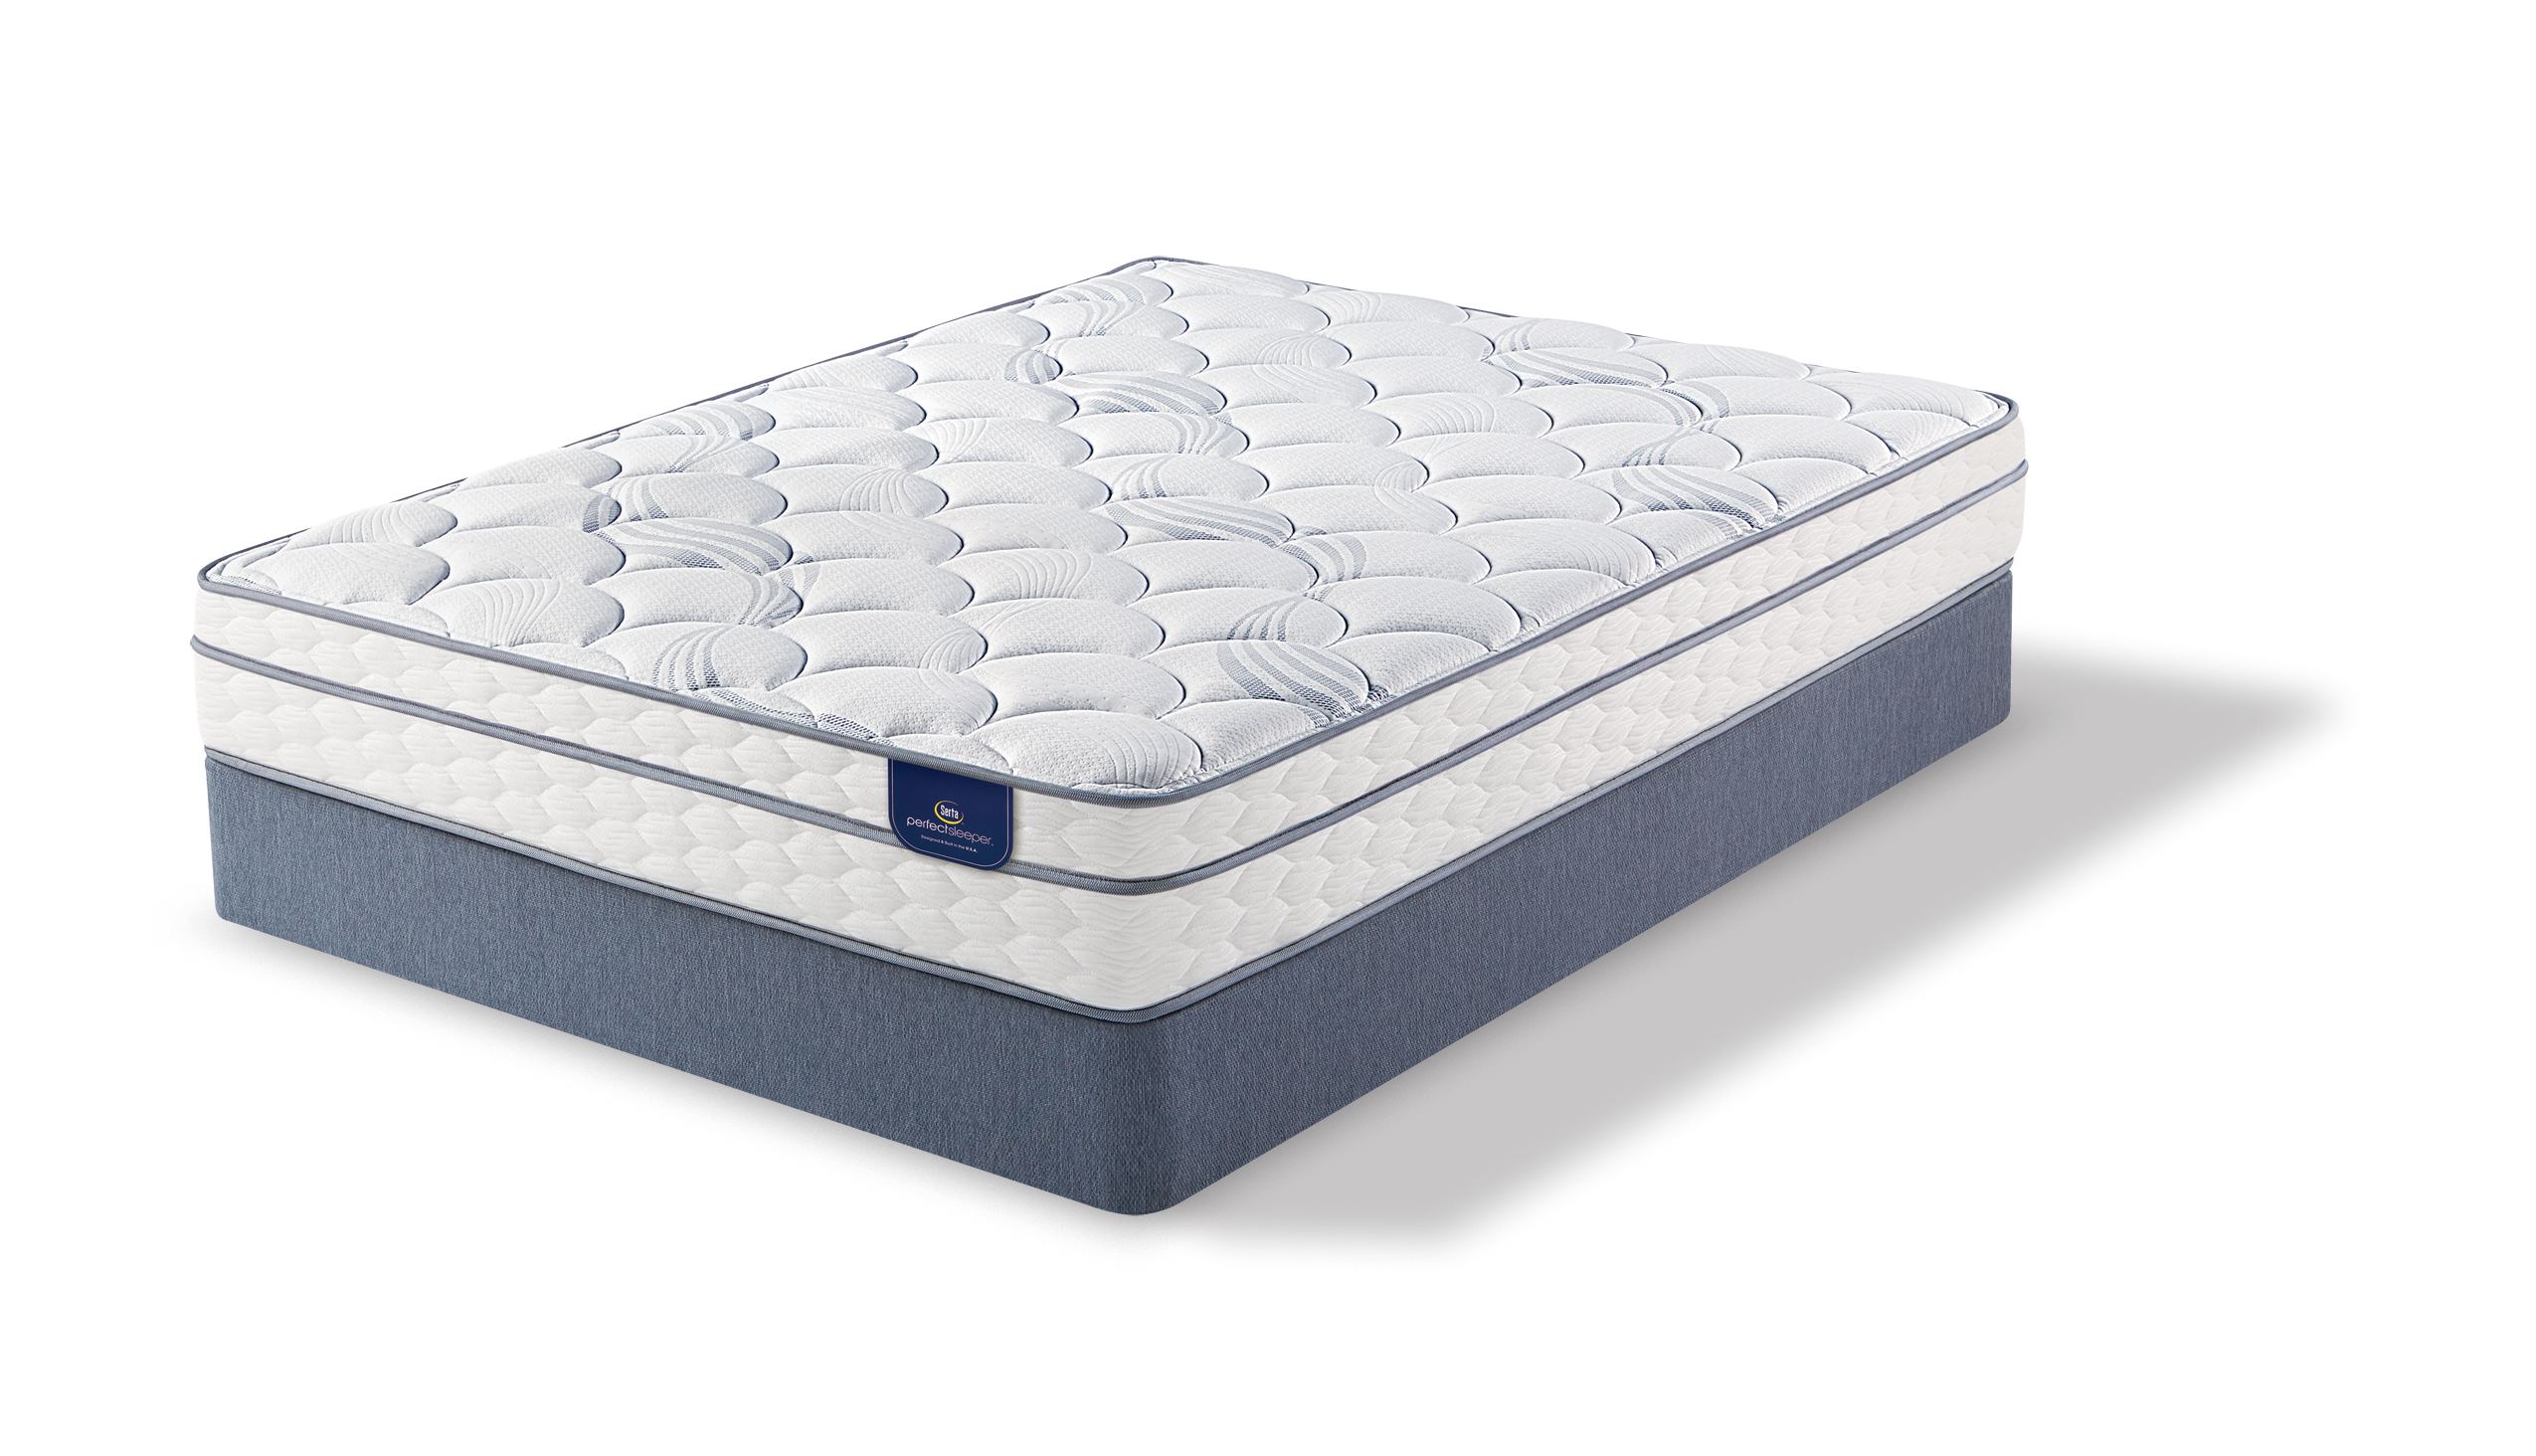 Serta Isleworth Eurotop Full Mattress